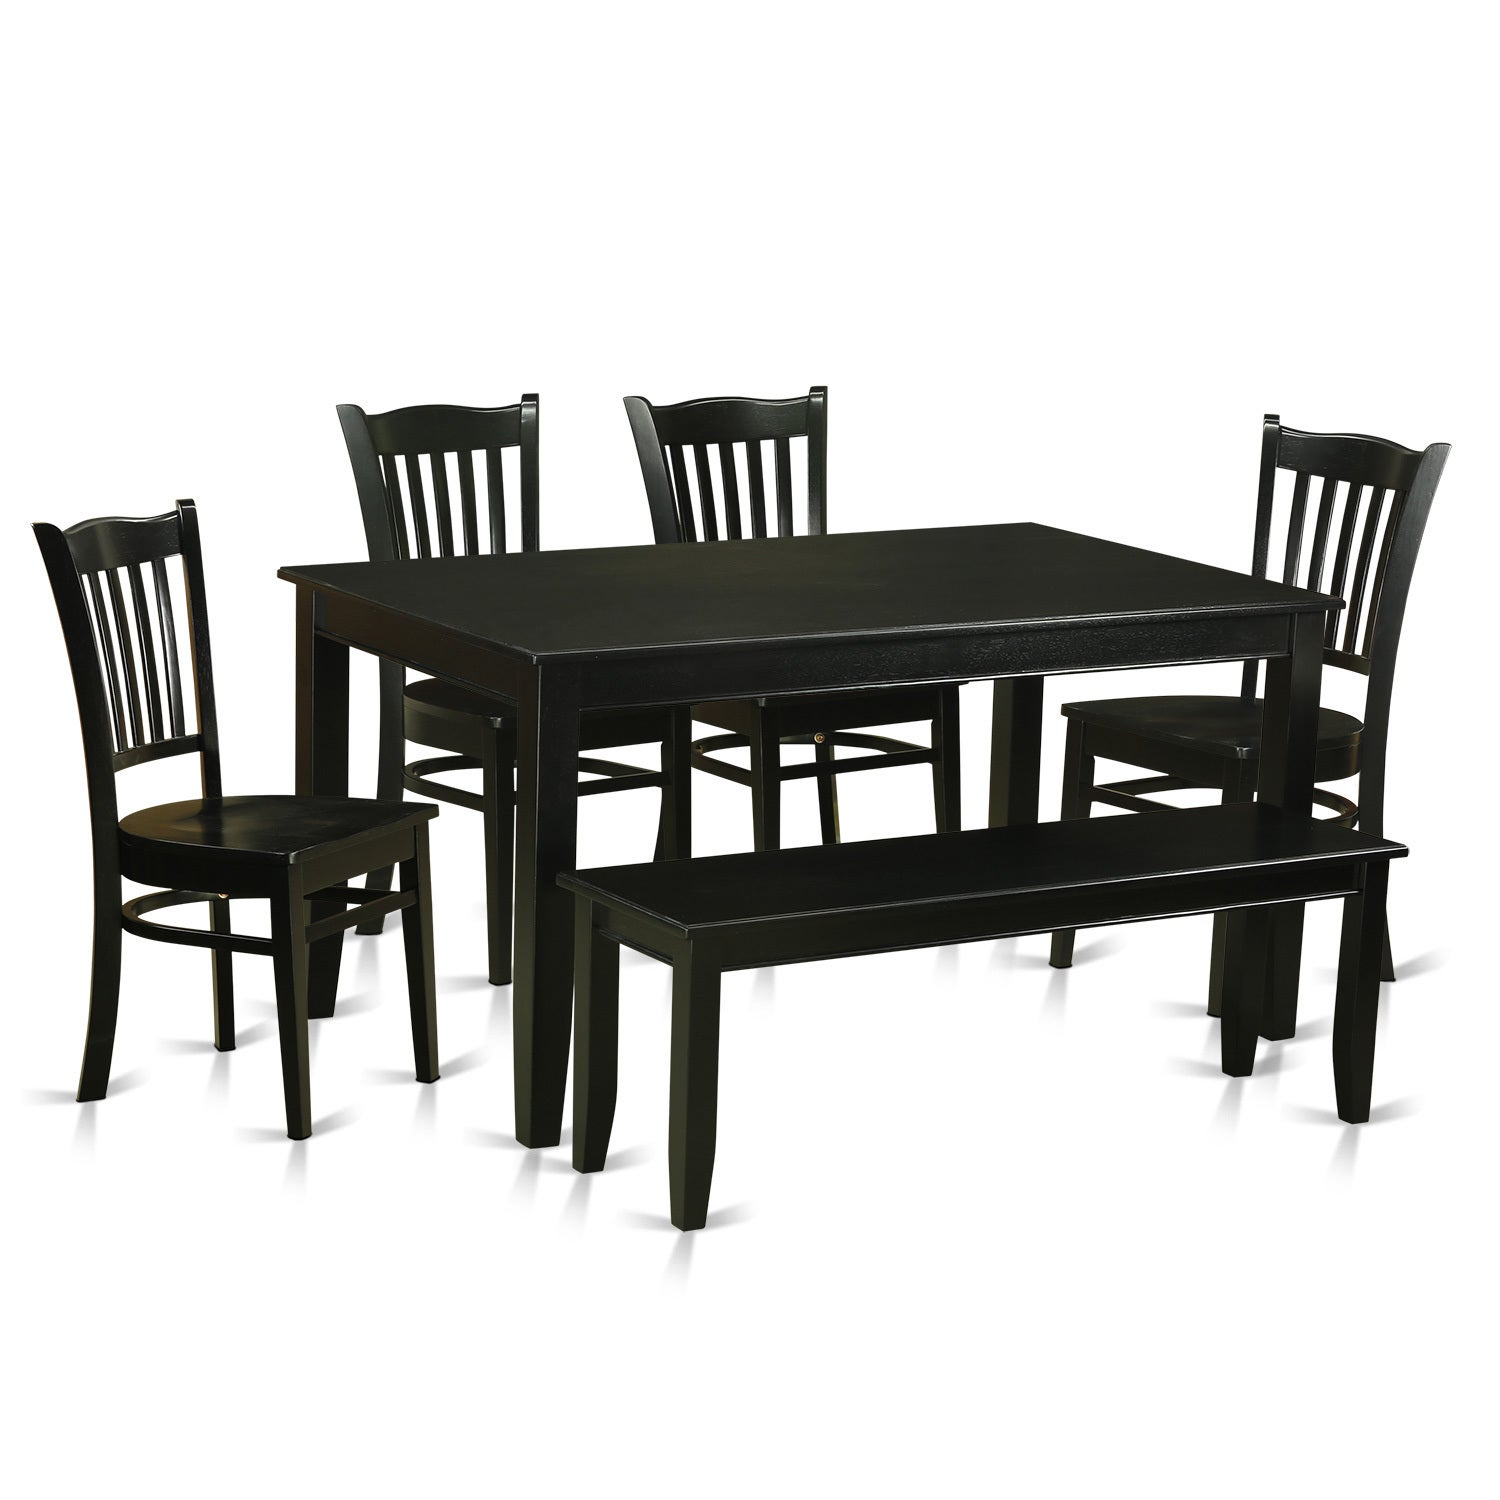 Rubberwood 6 Piece Dining Room Set